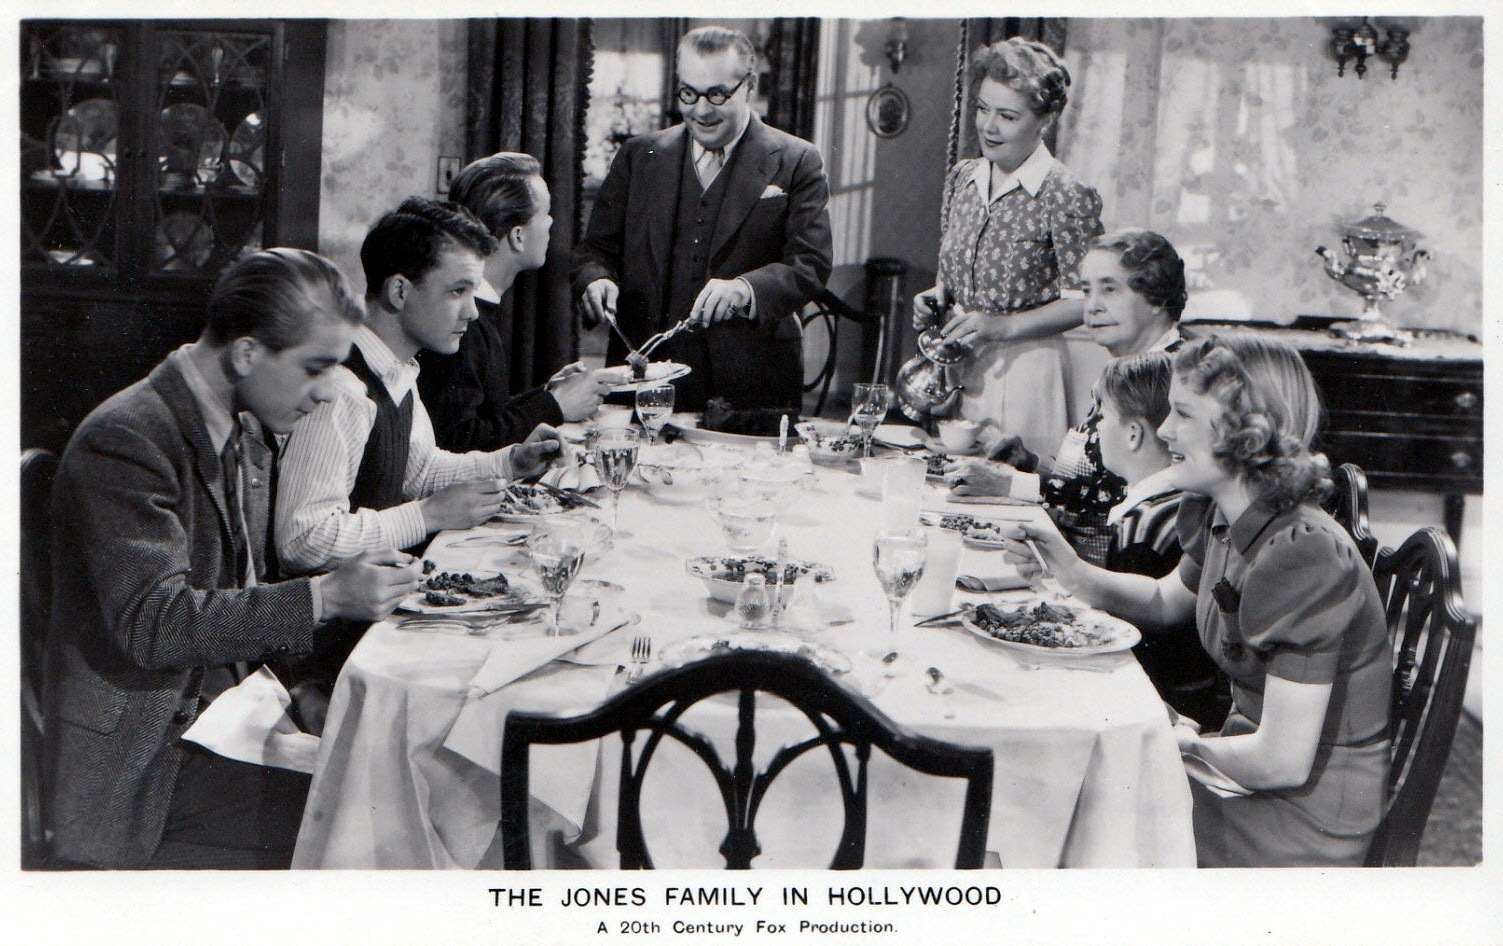 Spring Byington, June Carlson, George Ernest, Kenneth Howell, Billy Mahan, Jed Prouty, and Florence Roberts in The Jones Family in Hollywood (1939)